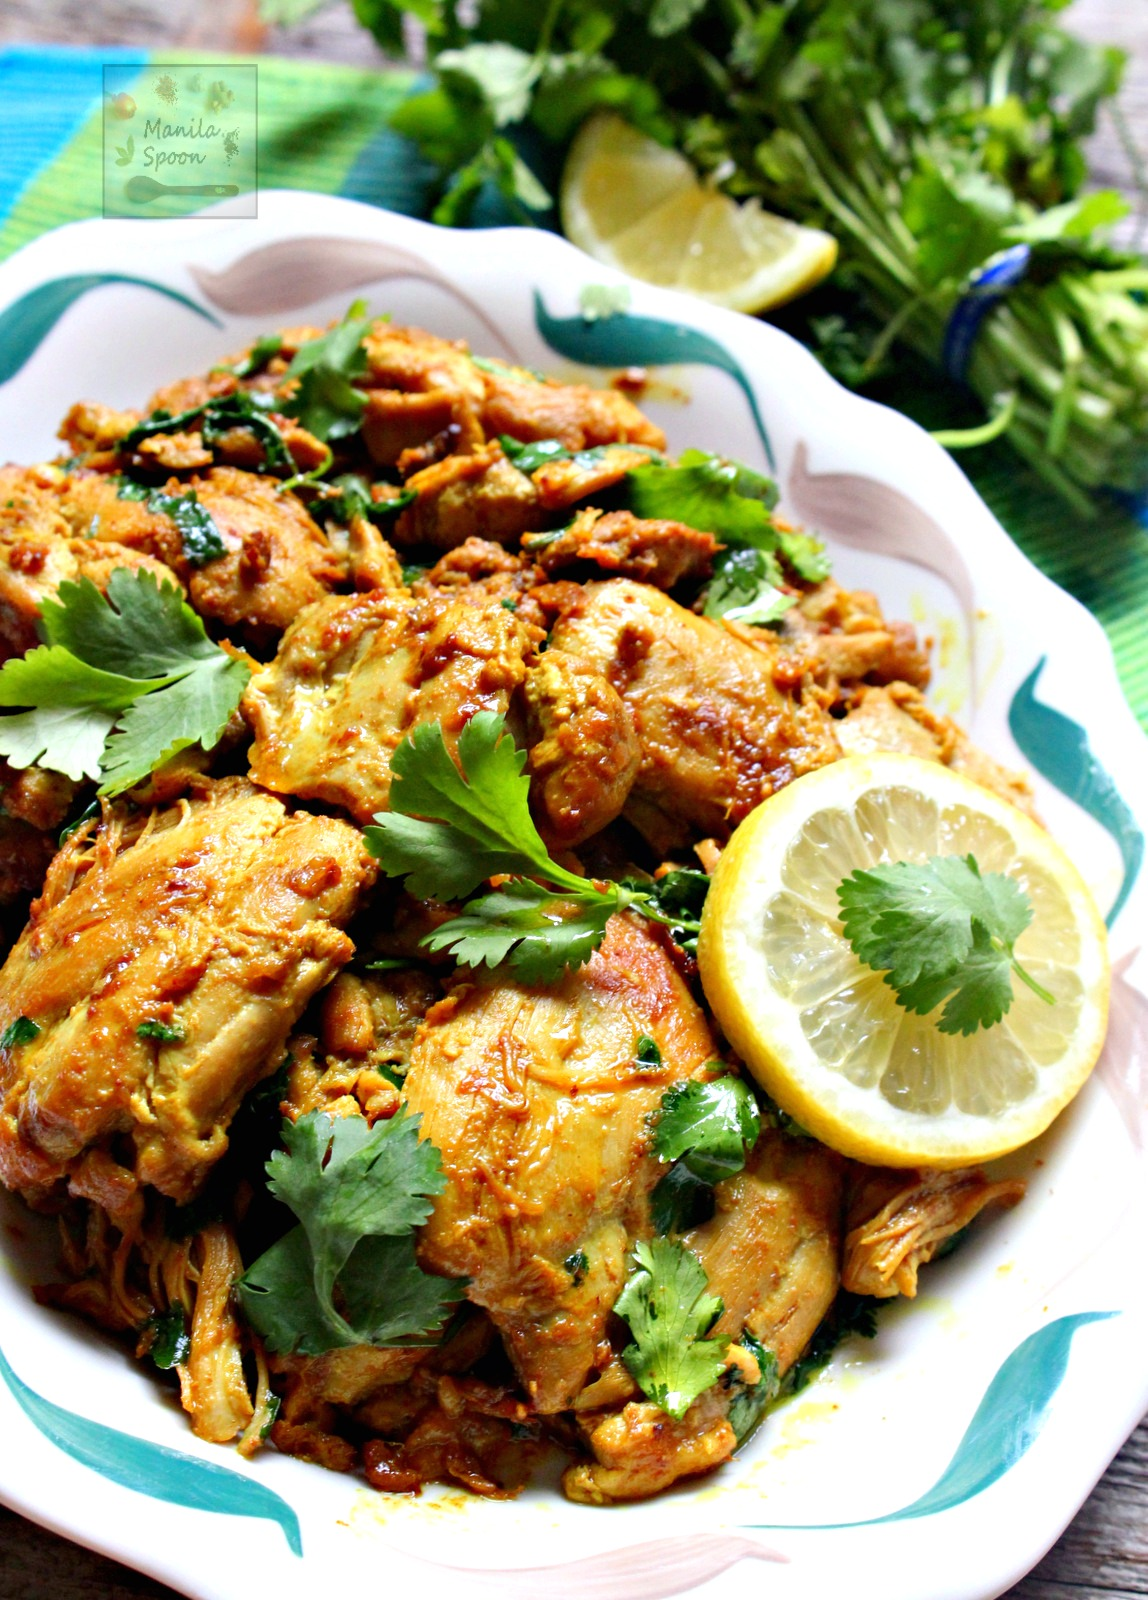 Fresh lemon juice, aromatic spices and herbs add so much flavor to this succulent chicken dish. Easy and delicious option for a weeknight family meal! Lemon Cilantro (Coriander) Chicken | manilaspoon.com